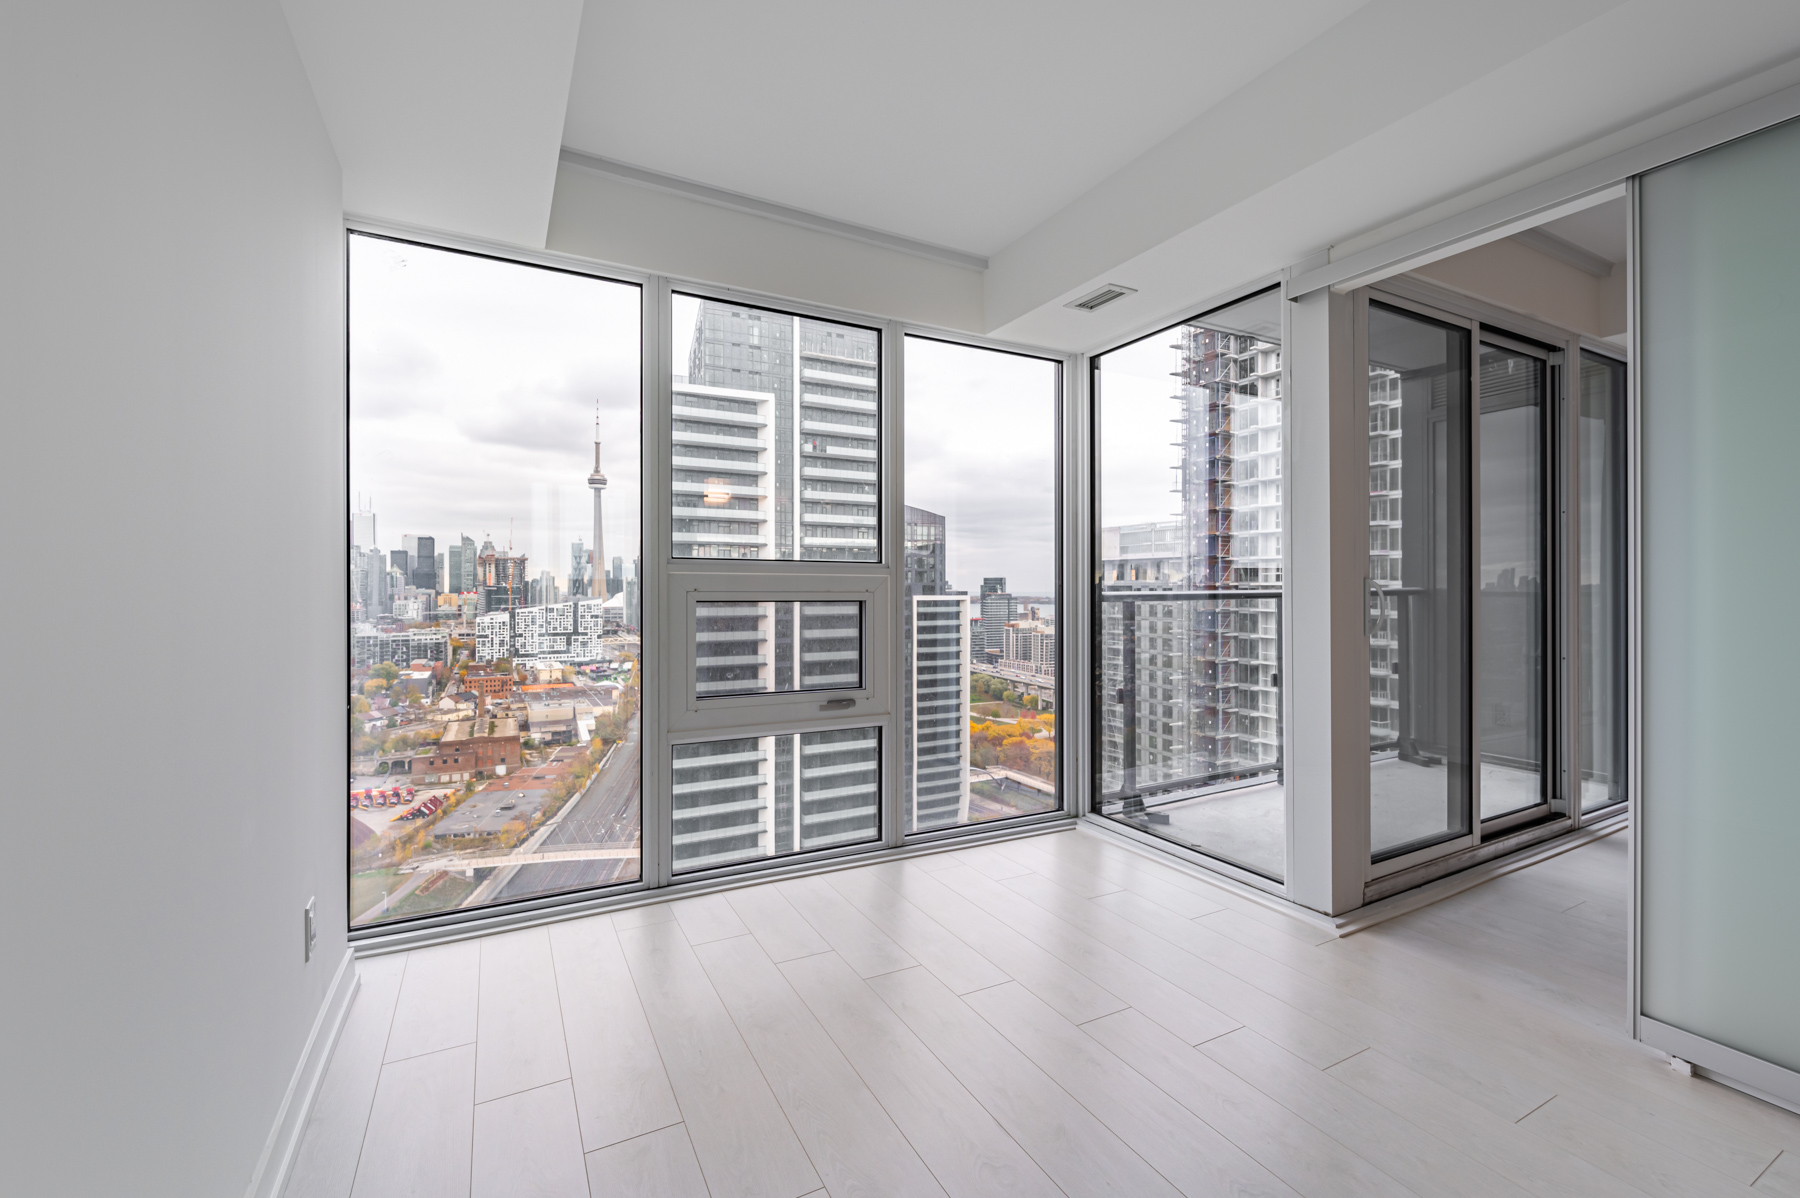 Empty condo bedroom with large glass windows showing Toronto.